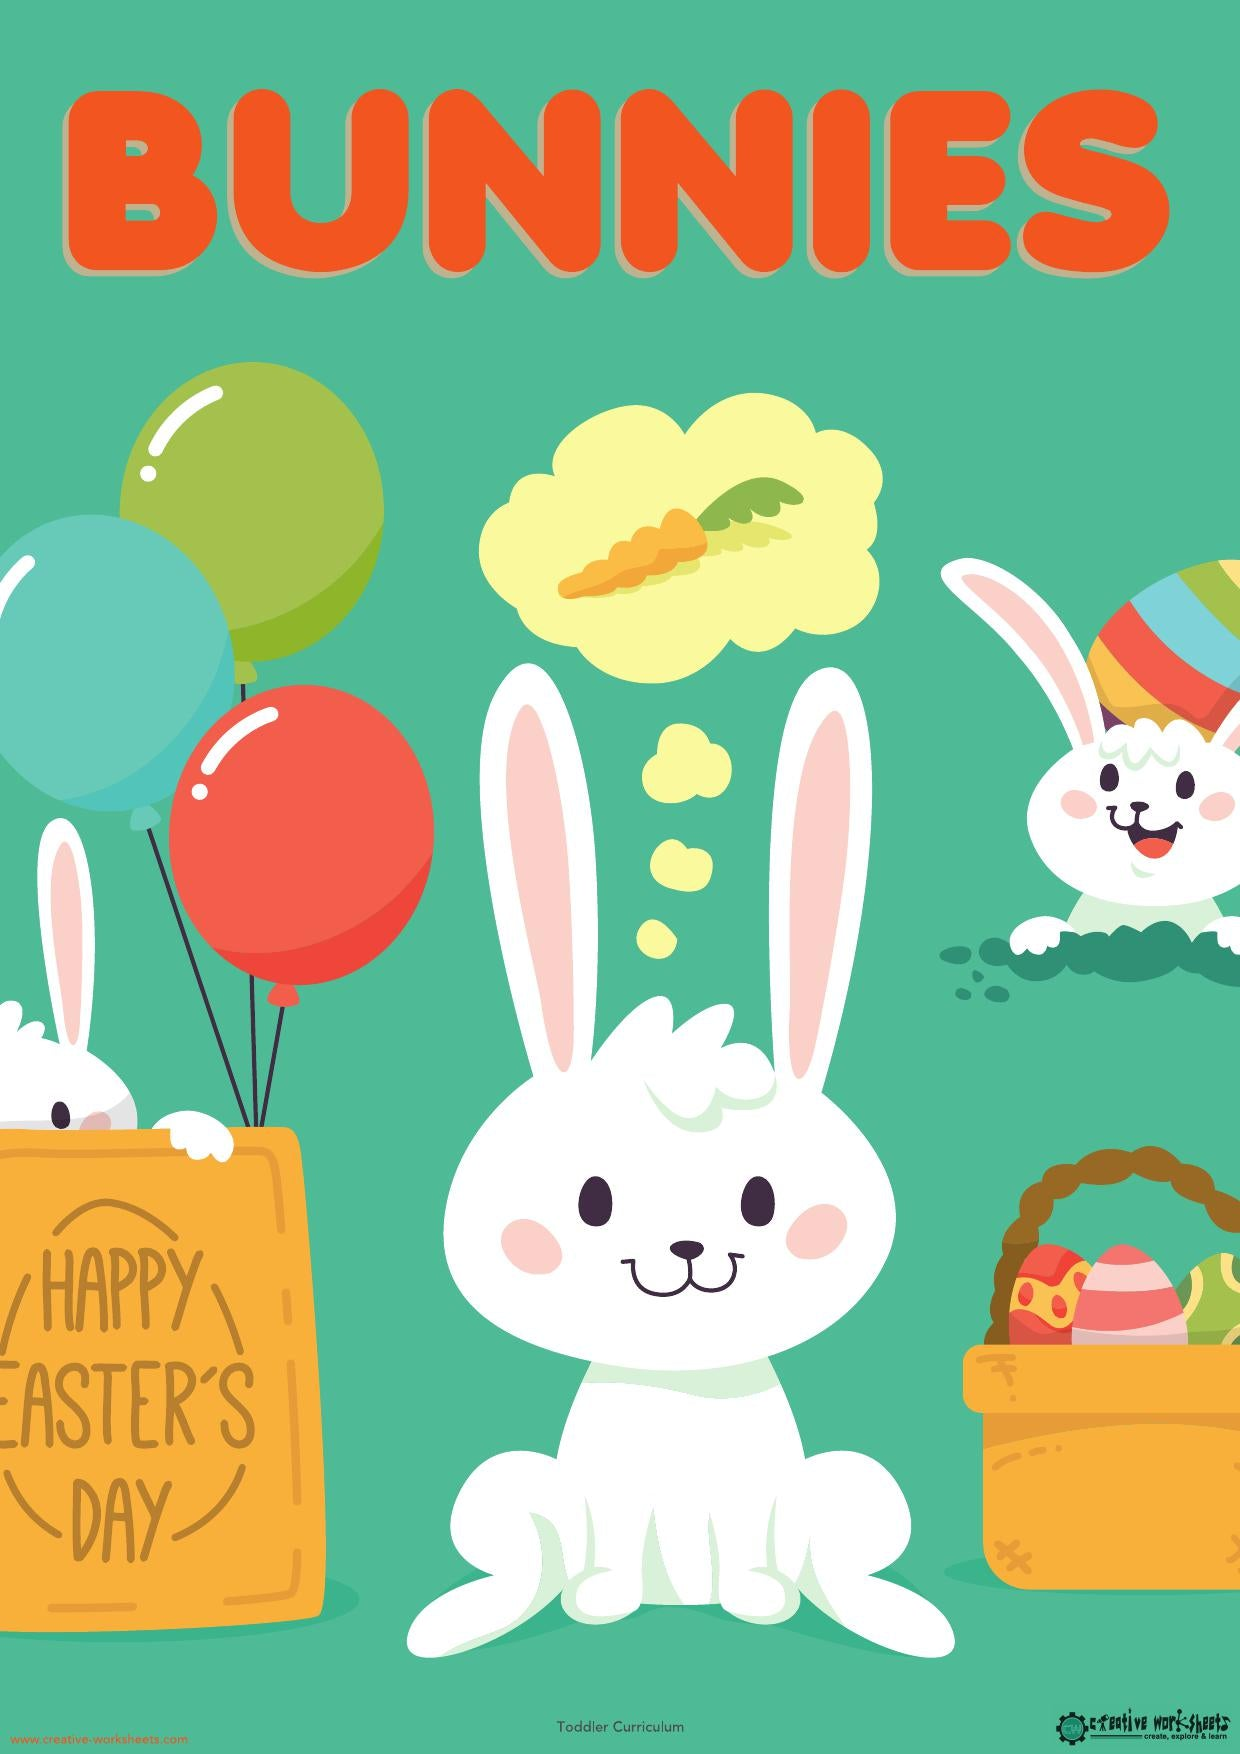 BUNNIES UNIT - TODDLER CURRICULUM - CreativeWorksheets